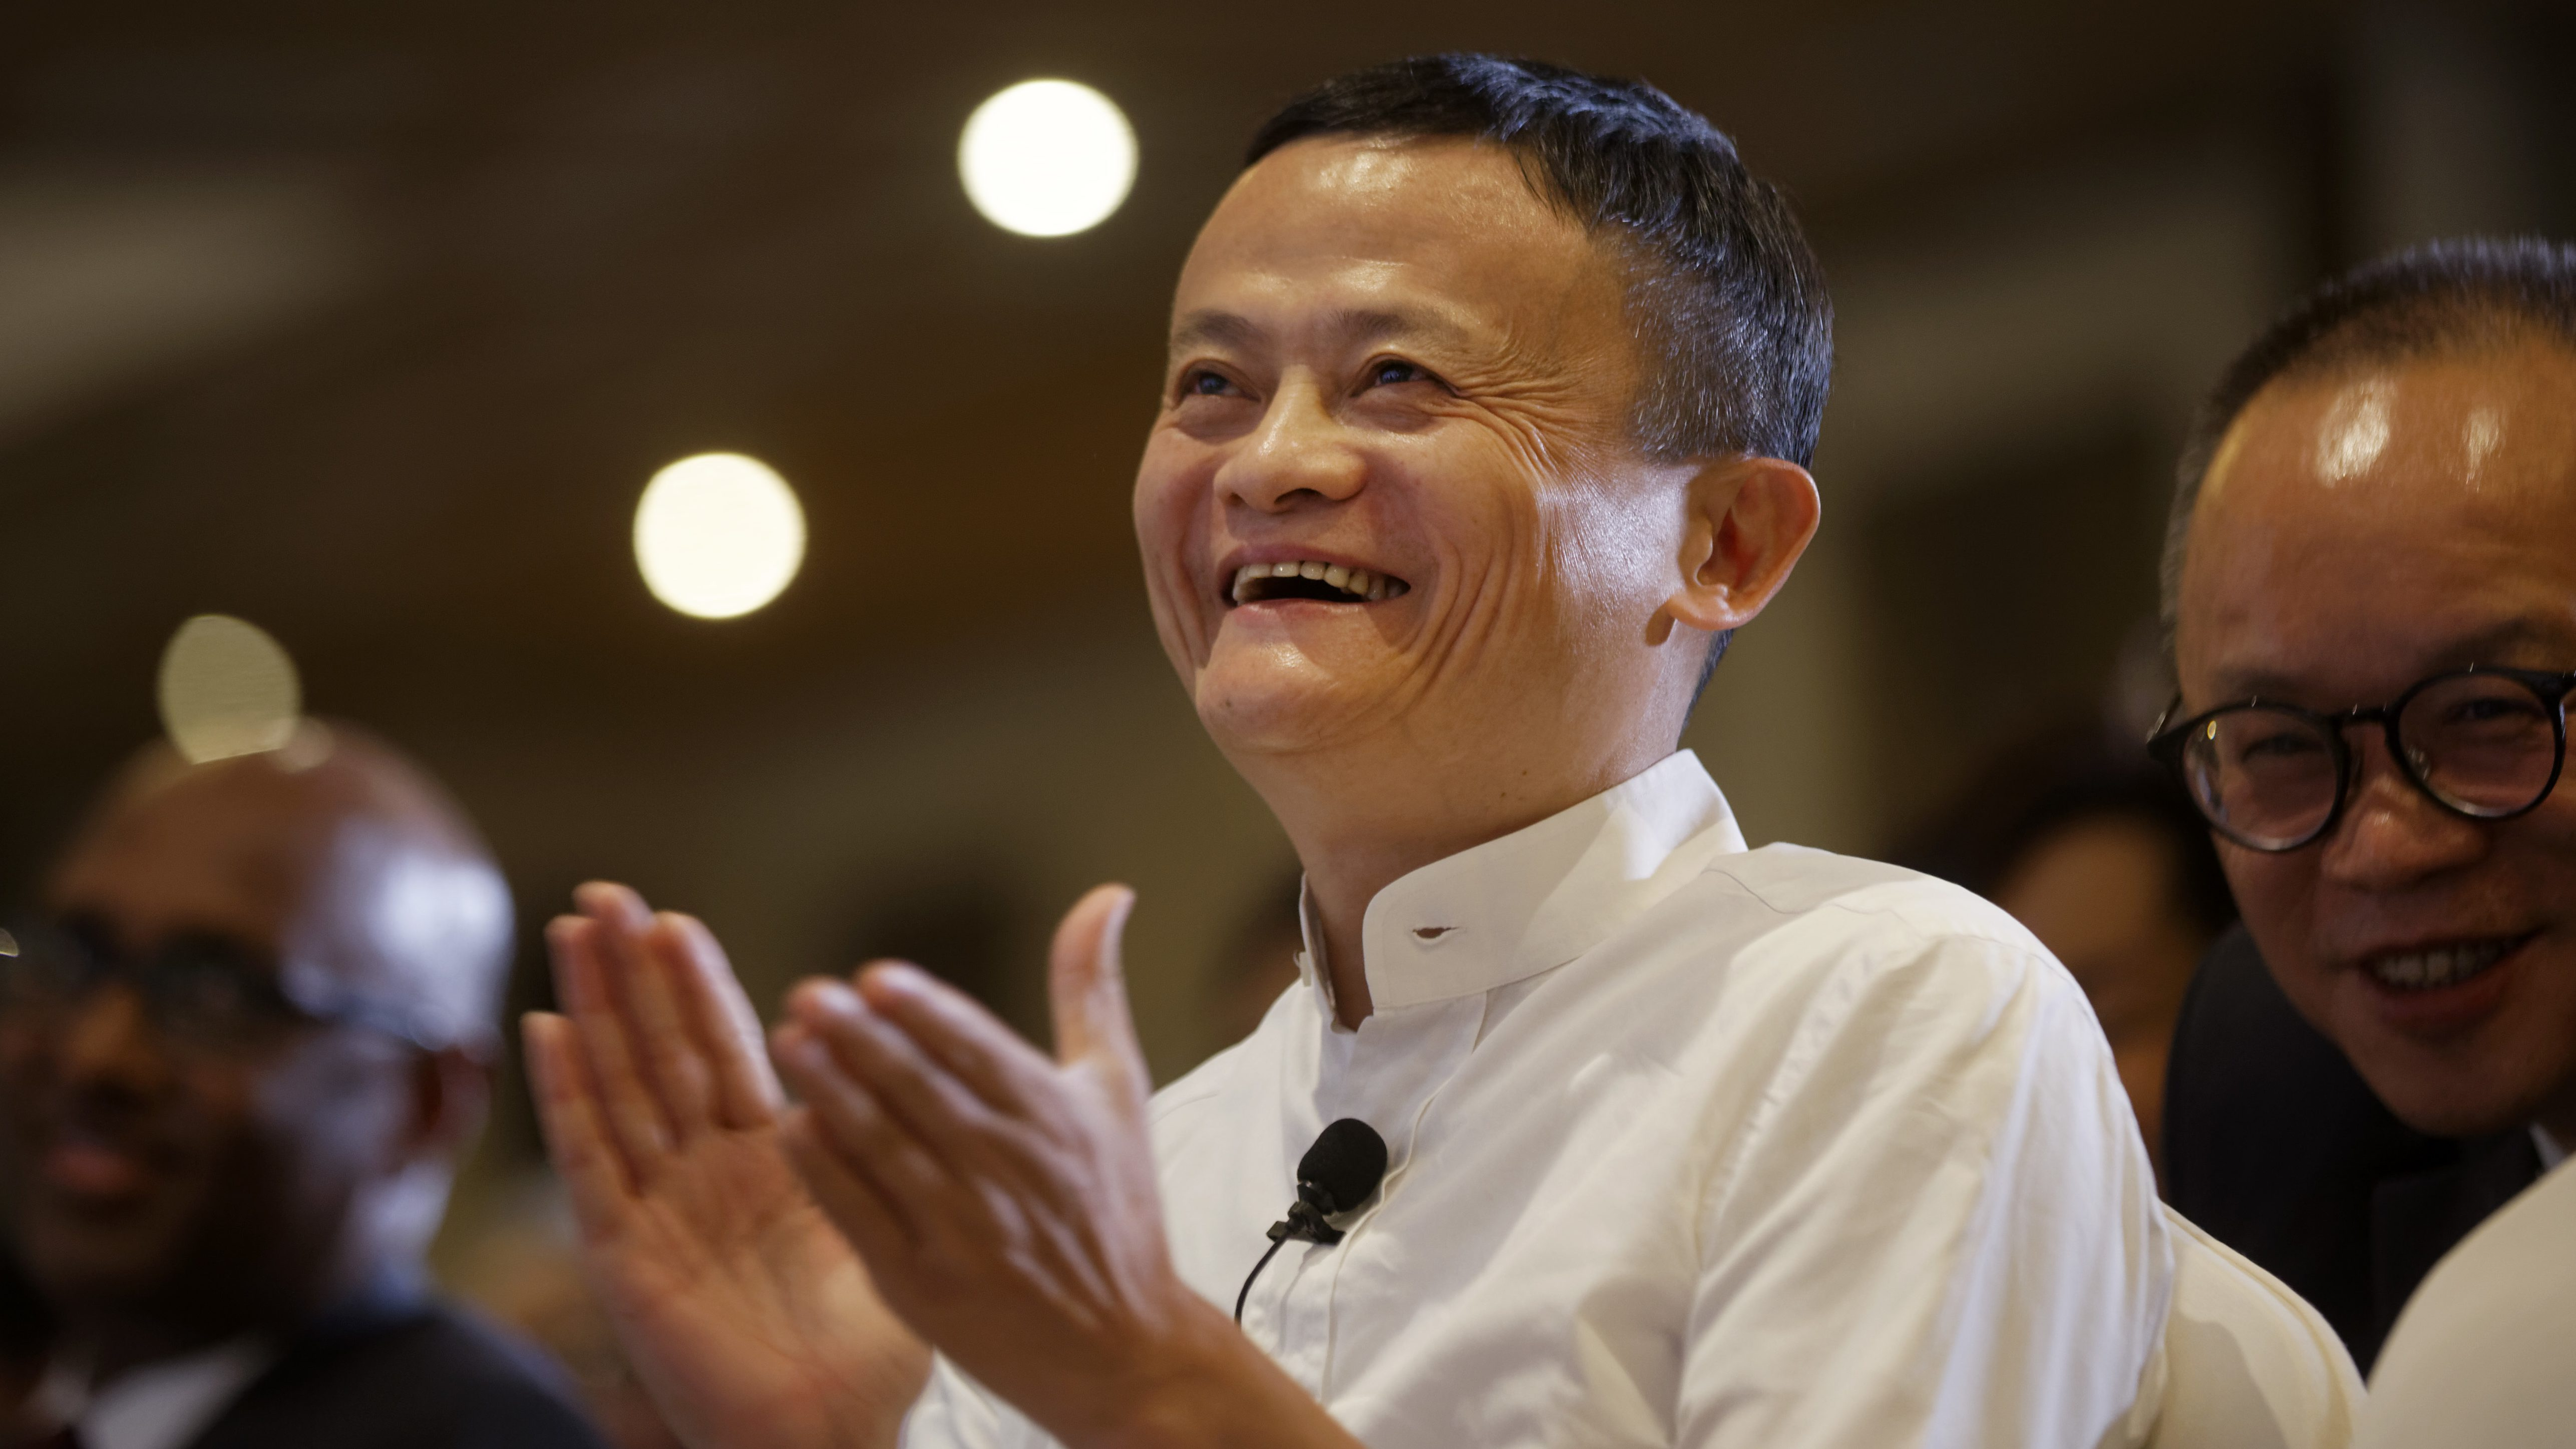 Alibaba S Jack Ma Is Visiting Kenya And Rwanda To Look For Deals And